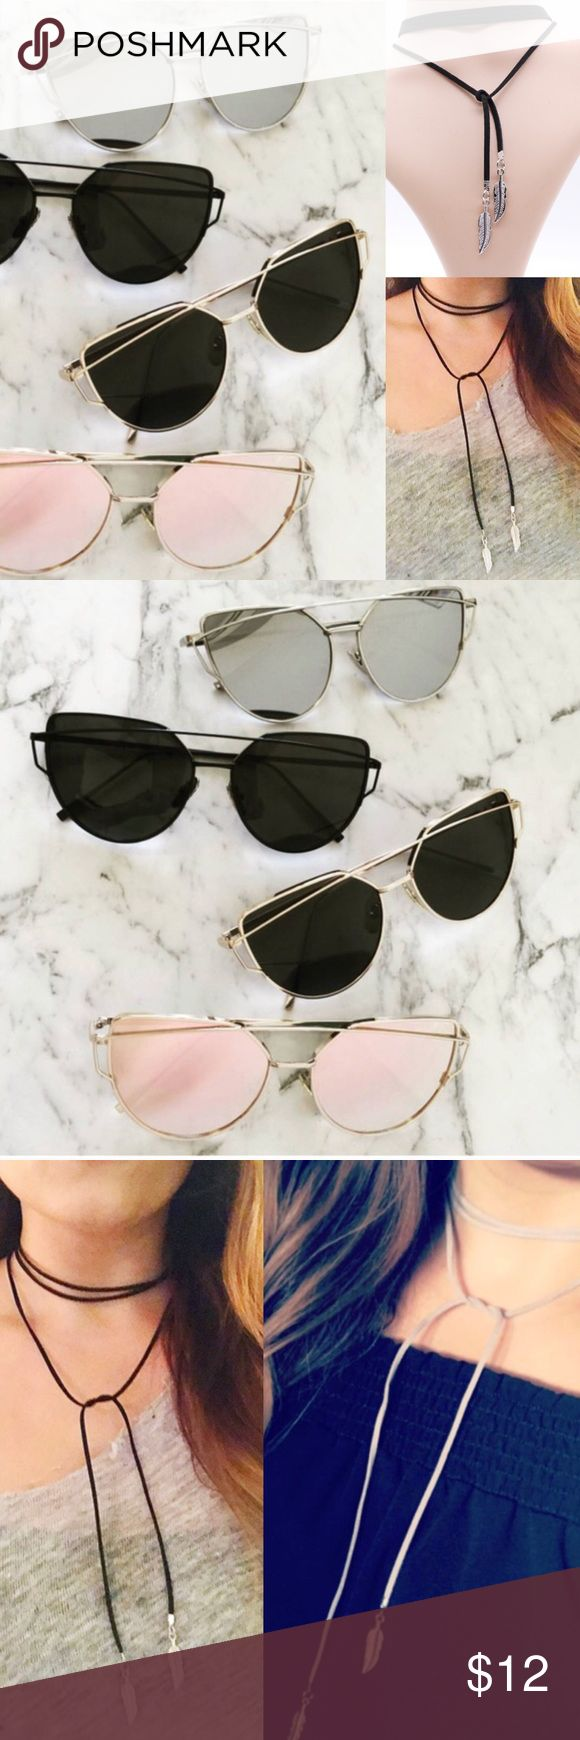 BUNDLE: Your Choice Sunnies ➕ Choker Pick any color sunglasses and any Choker listed on my site for flat rate of $12! Enjoy this custom bundle! Sunglasses Colors Available: Rose gold, Black, Silver. Choker options: Feather Wrap (in black or grey), 5cm Black Velvet Choker Accessories Sunglasses